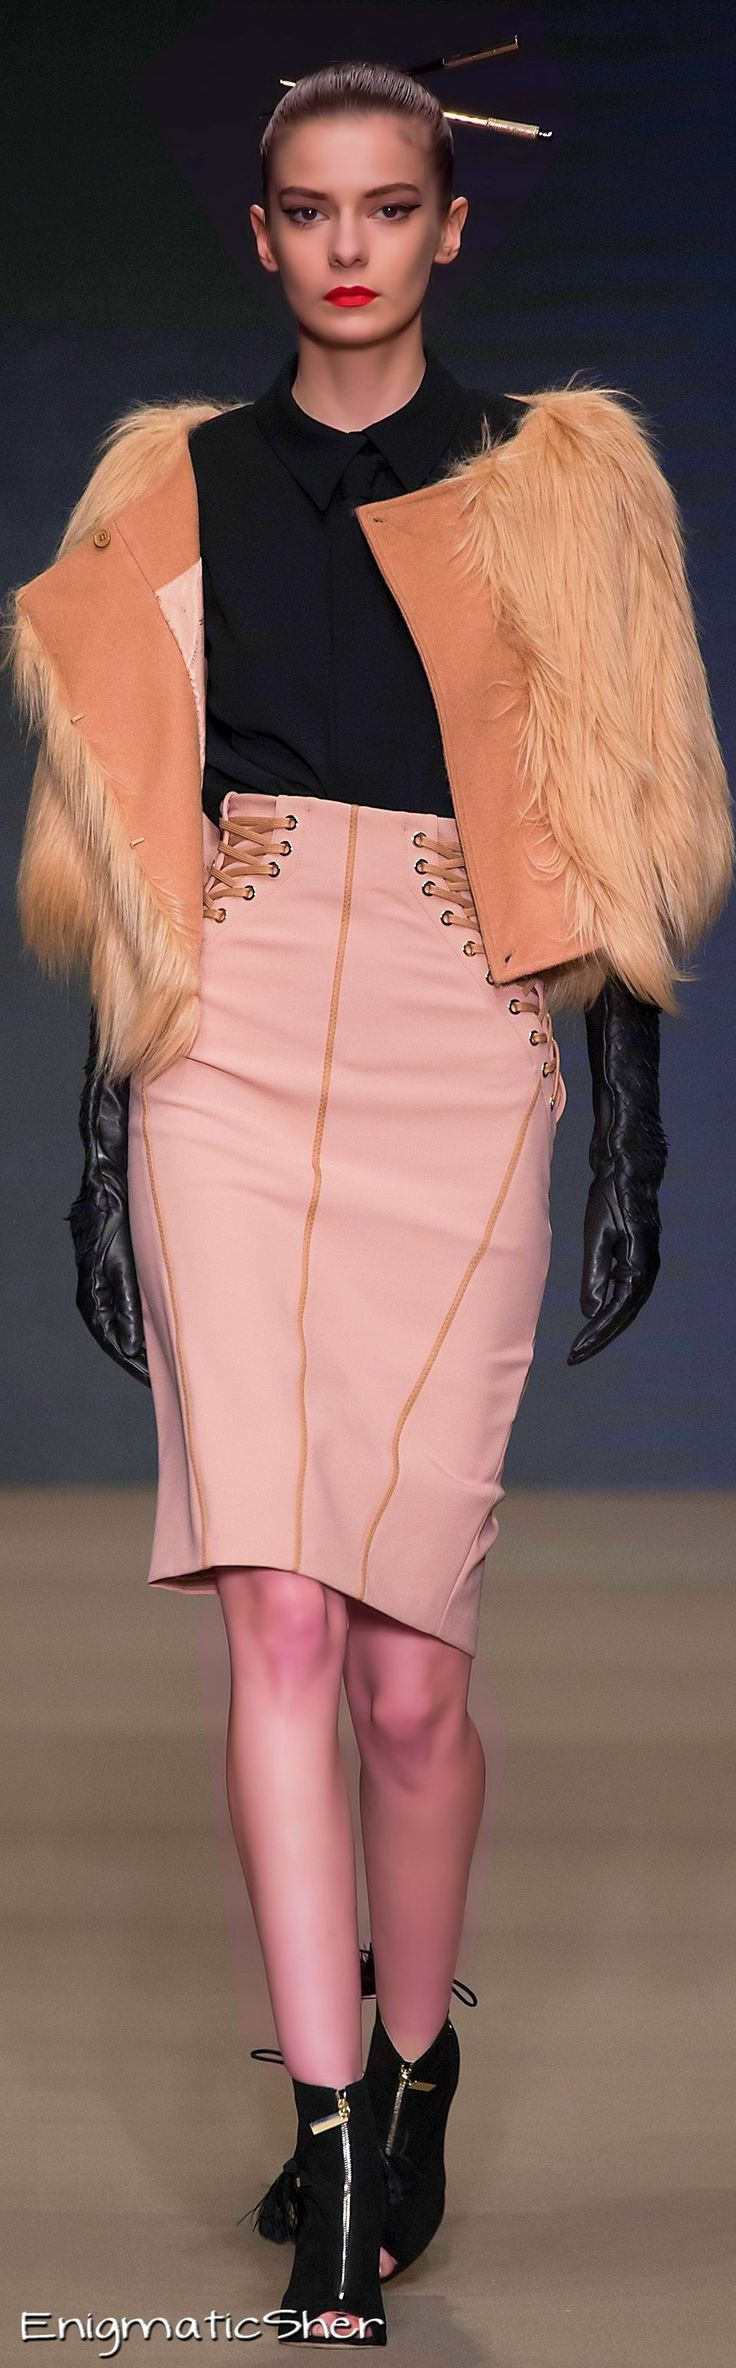 Elisabetta Franchi Fall-Winter 2015-16 - to see full image click on the picture